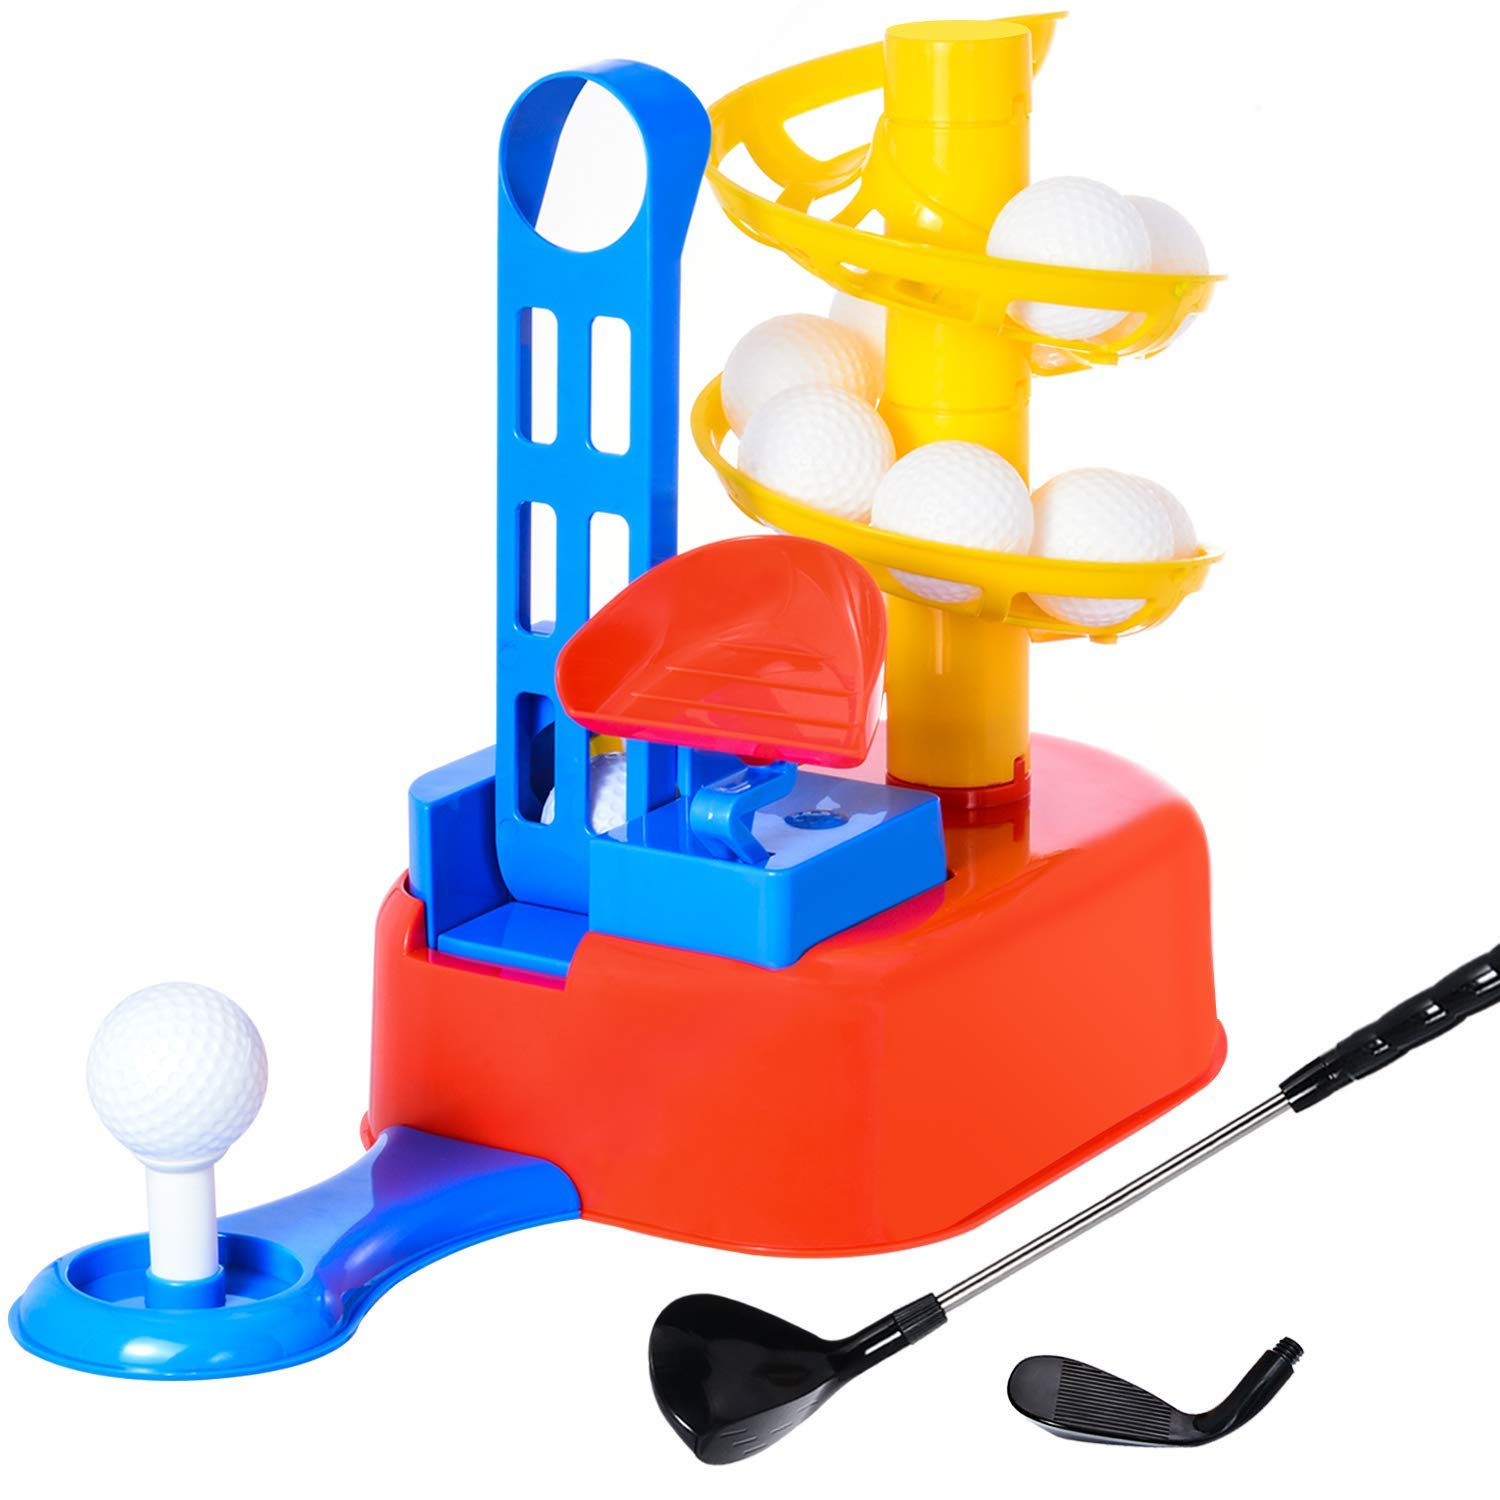 Exercise N Play Golf Toys Set, Kids Outdoor Toys, Kids Golf Clubs, Golf Ball Game, Early Educational, Outdoor Outside Exercise Toys for 3, 4, 5, 6, 7 Year Olds Kids, Toddlers, Boys, Girls by EP EXERCISE N PLAY